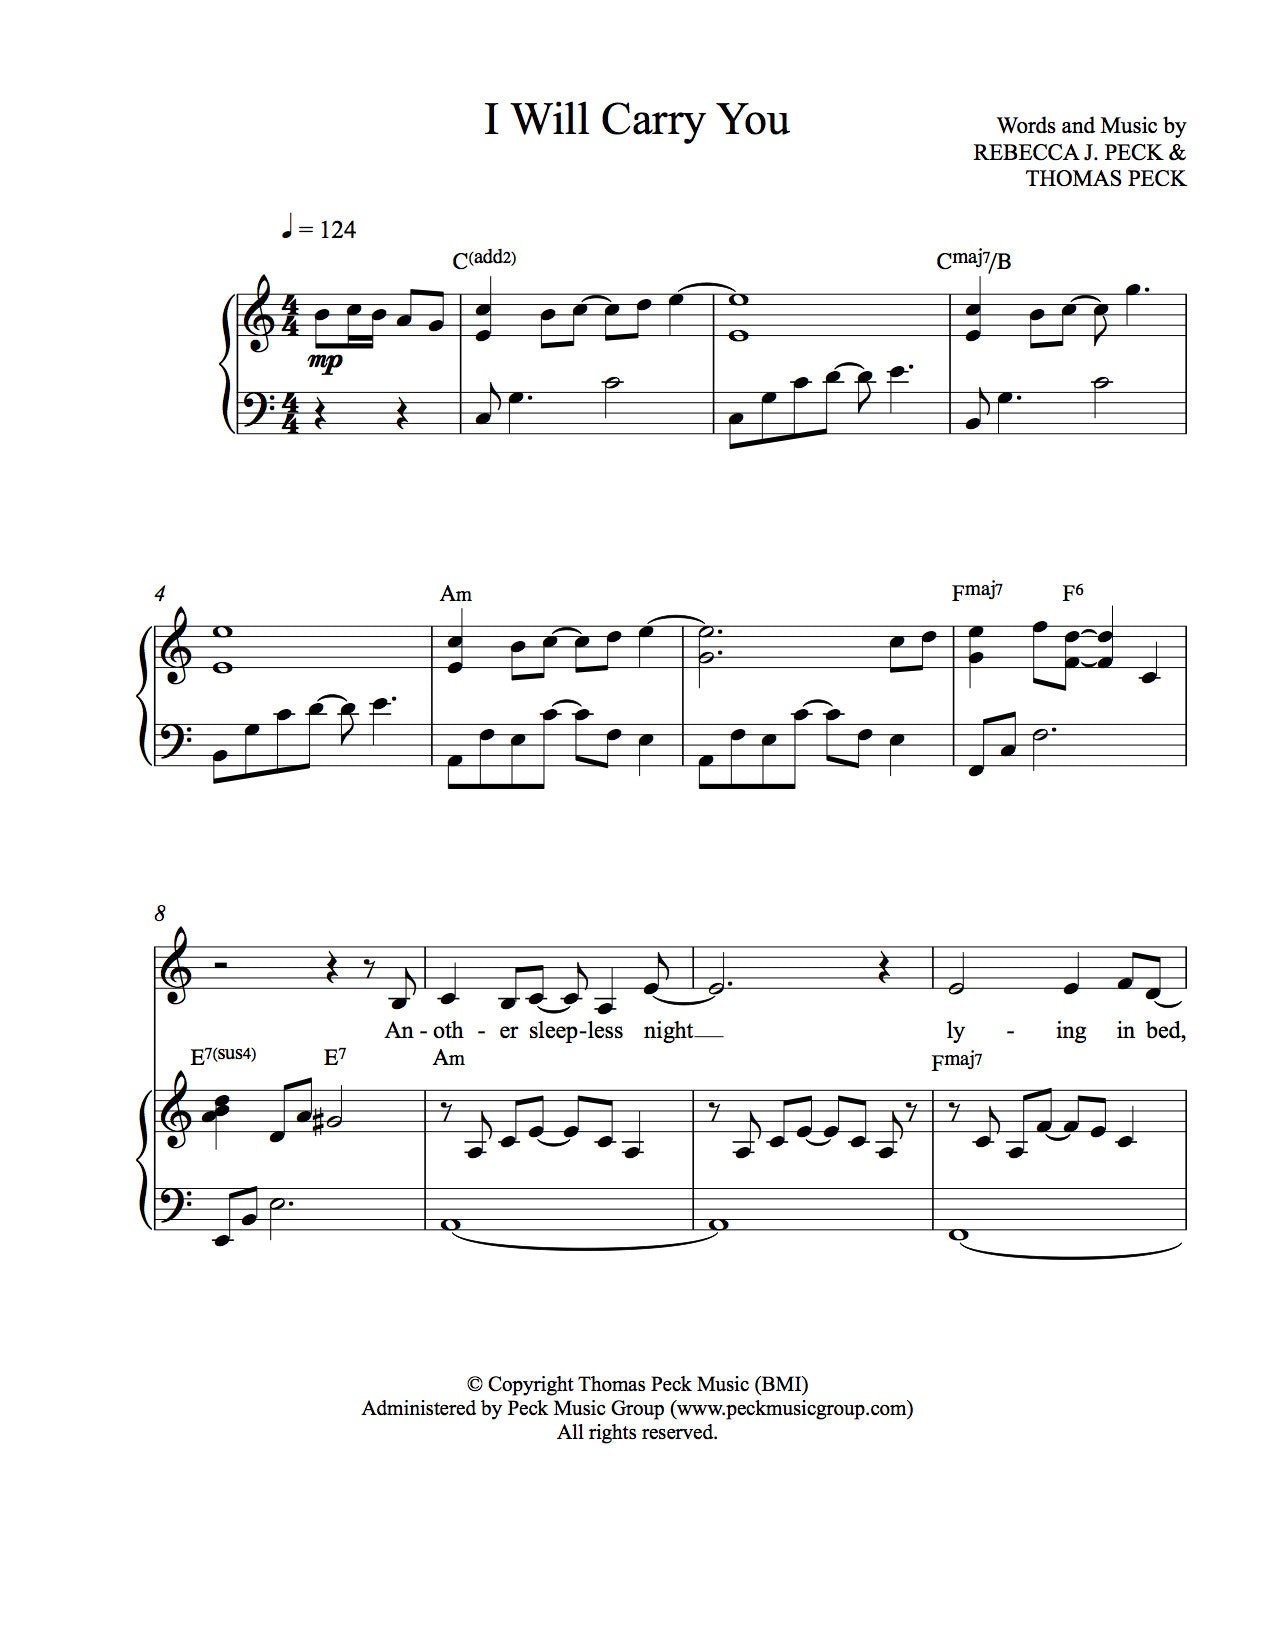 I Will Carry You - sheet music (downloadable PDF) | Peck Music ...